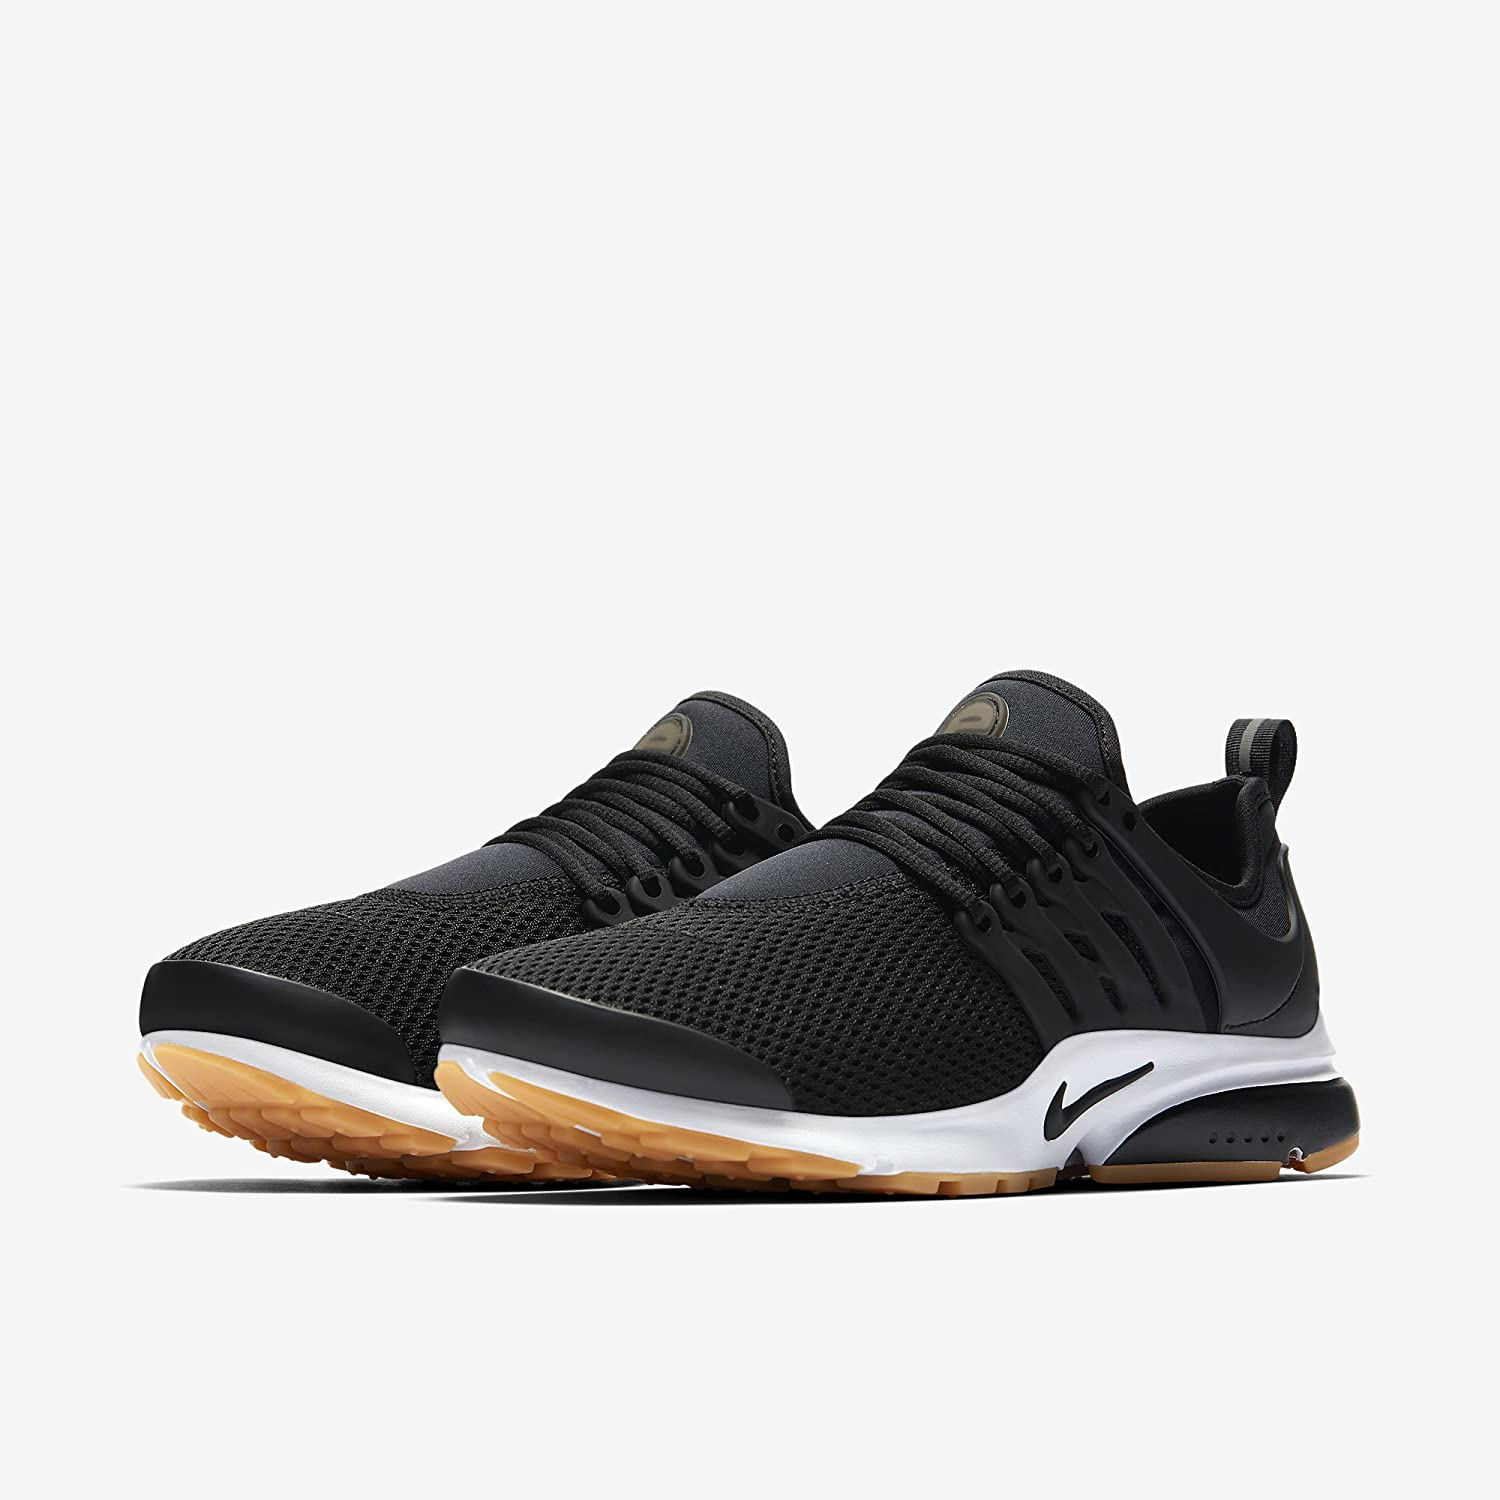 newest collection 84e65 4bacc Nike Womens Air Presto Black/White/Gum Yellow/Black Running Shoe Sz, 11